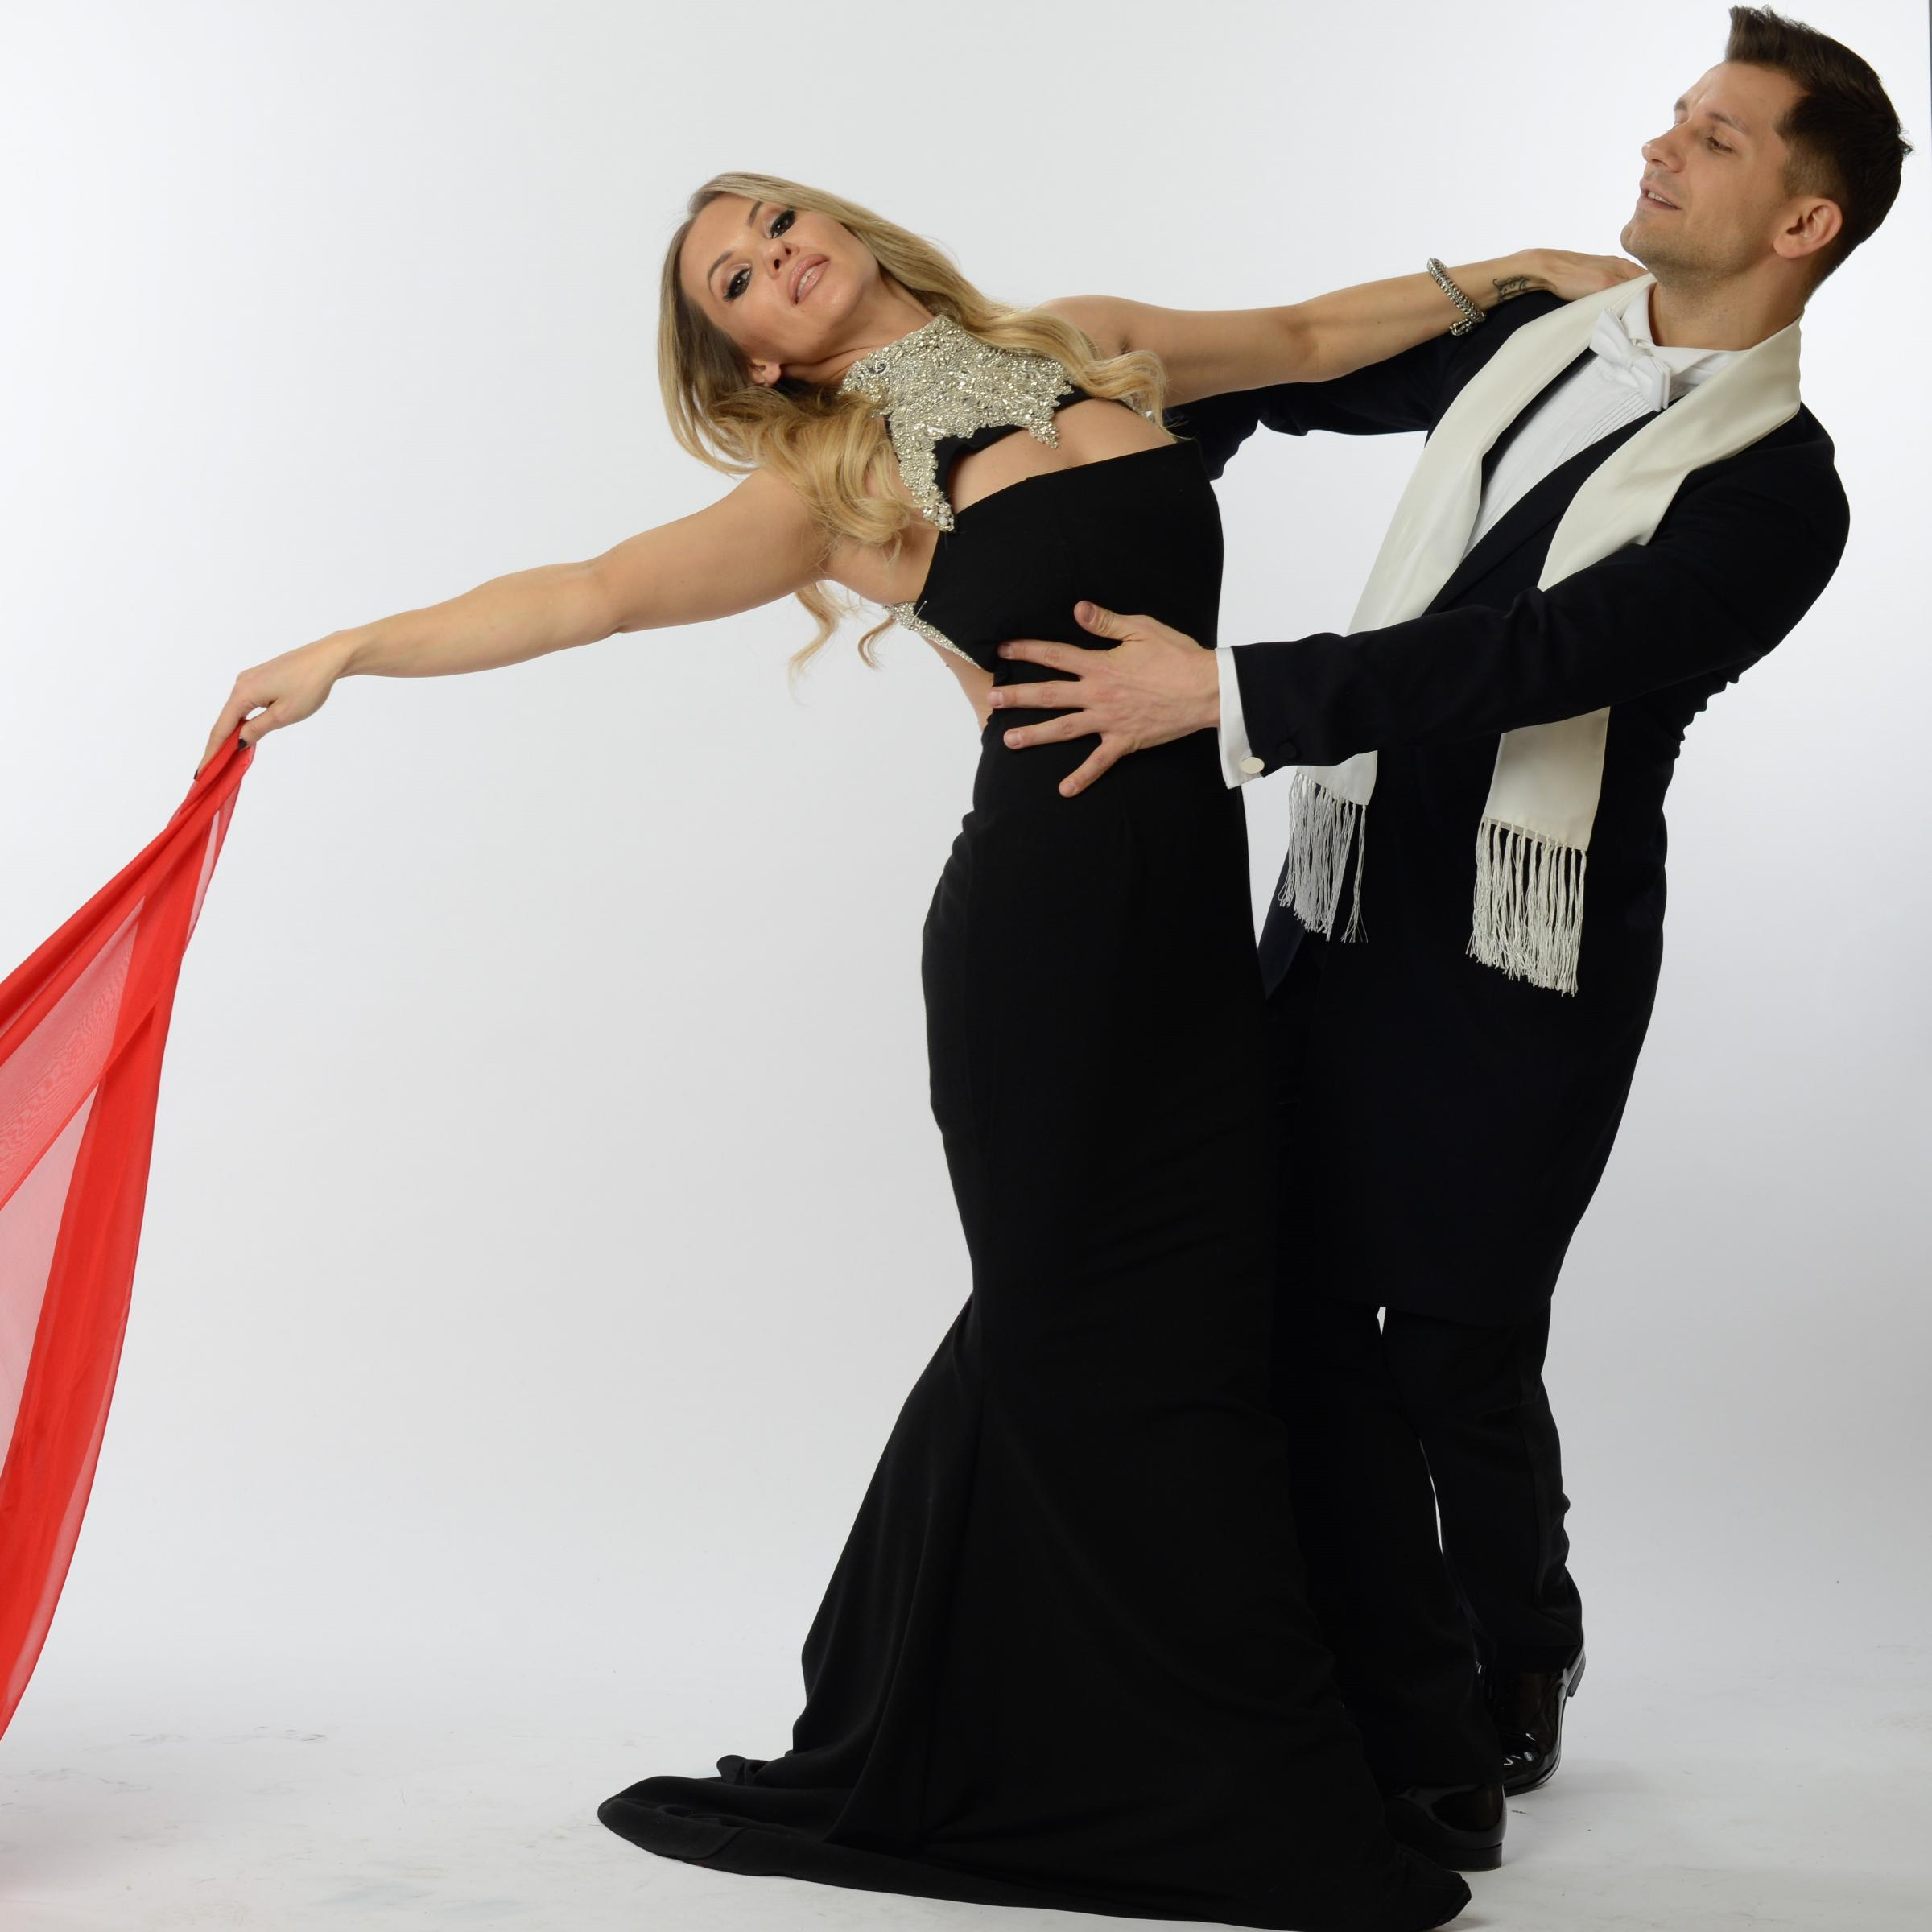 Strictly stars Anya Garnis and Pasha Kovalev will be at The Pavilion on April 14